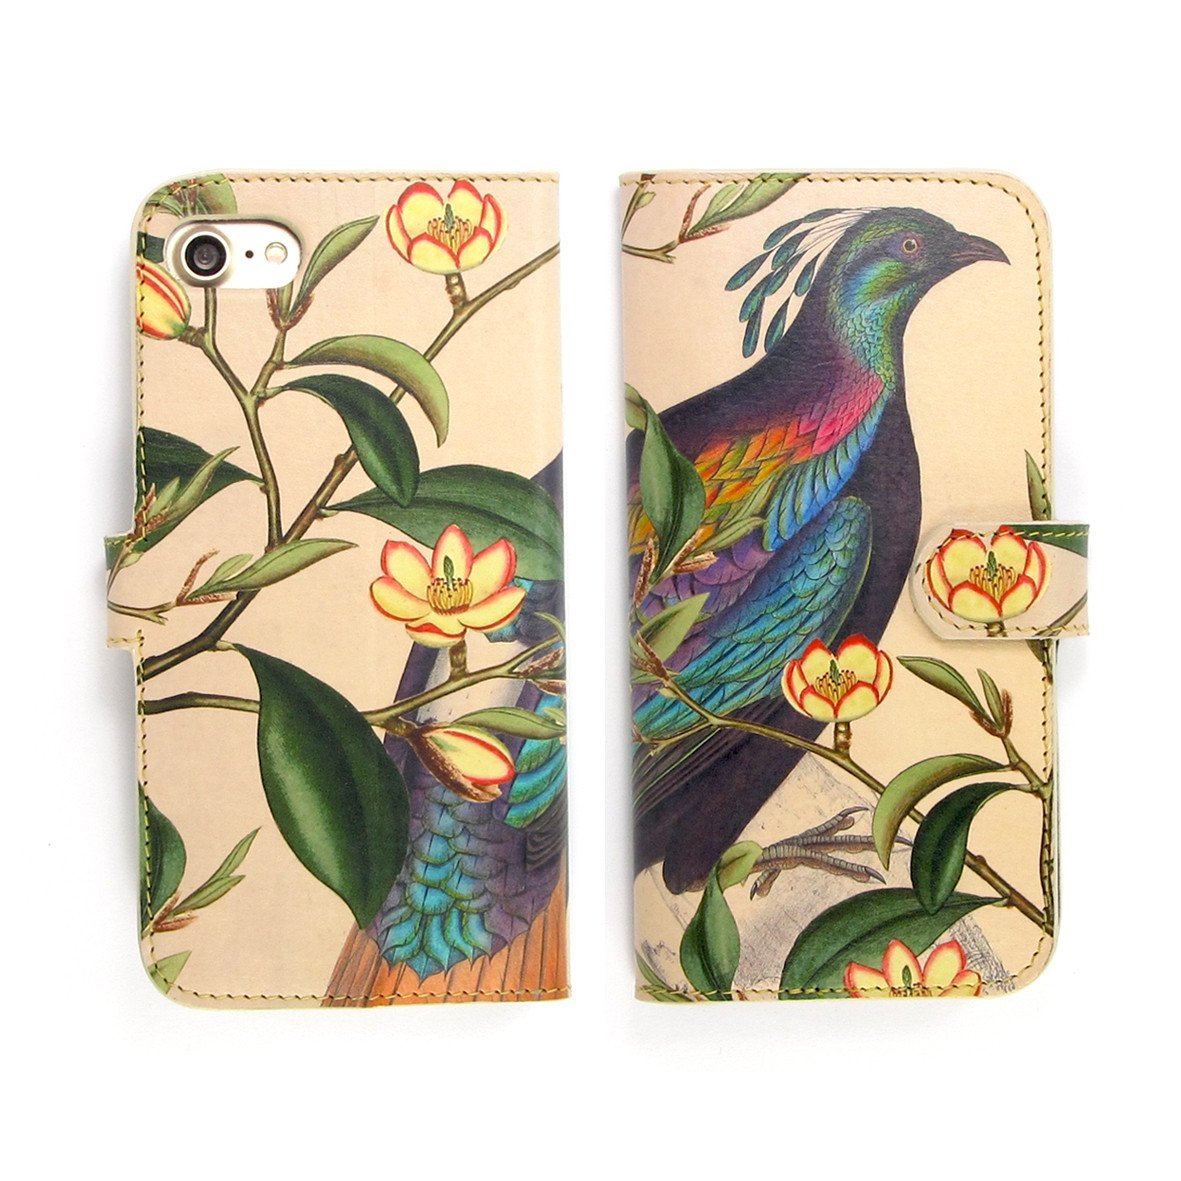 Birds and flowers iPhone 8, iPhone 7, iPhone XR case, iPhone XS phone case, iPhone XS Max phonecase - Pink designer phone case by Tovi Sorga.